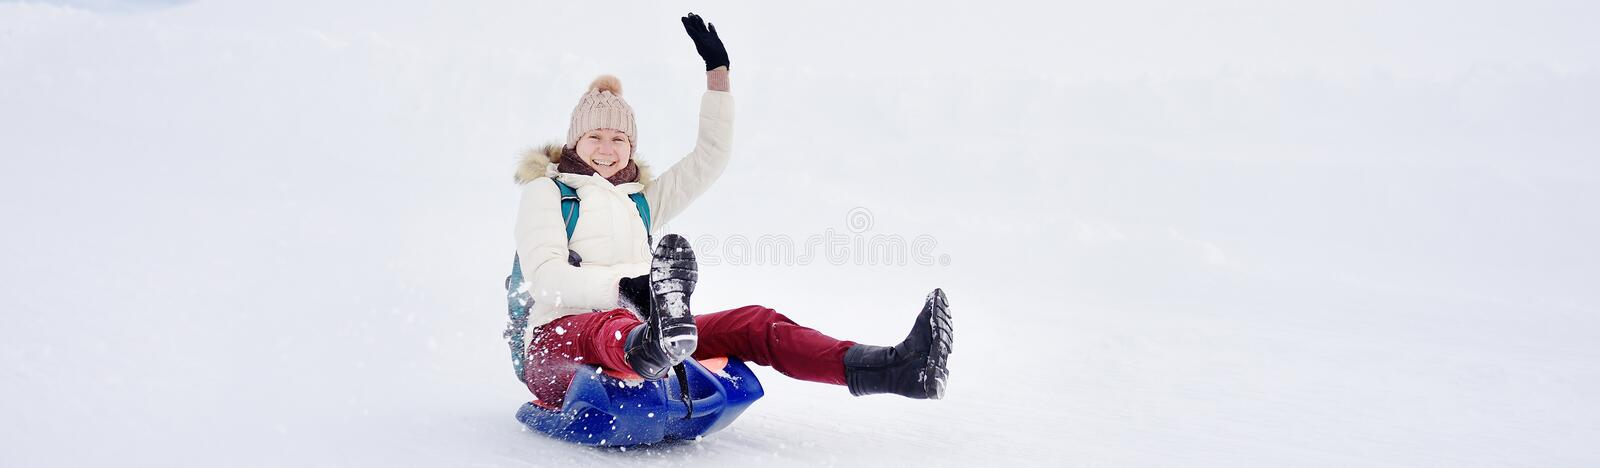 Happy middle age woman having fun during rolling down the mountain slope on sled in Alps. Winter sports with snow. Sledding - typical fun in the Alps mountains stock photo